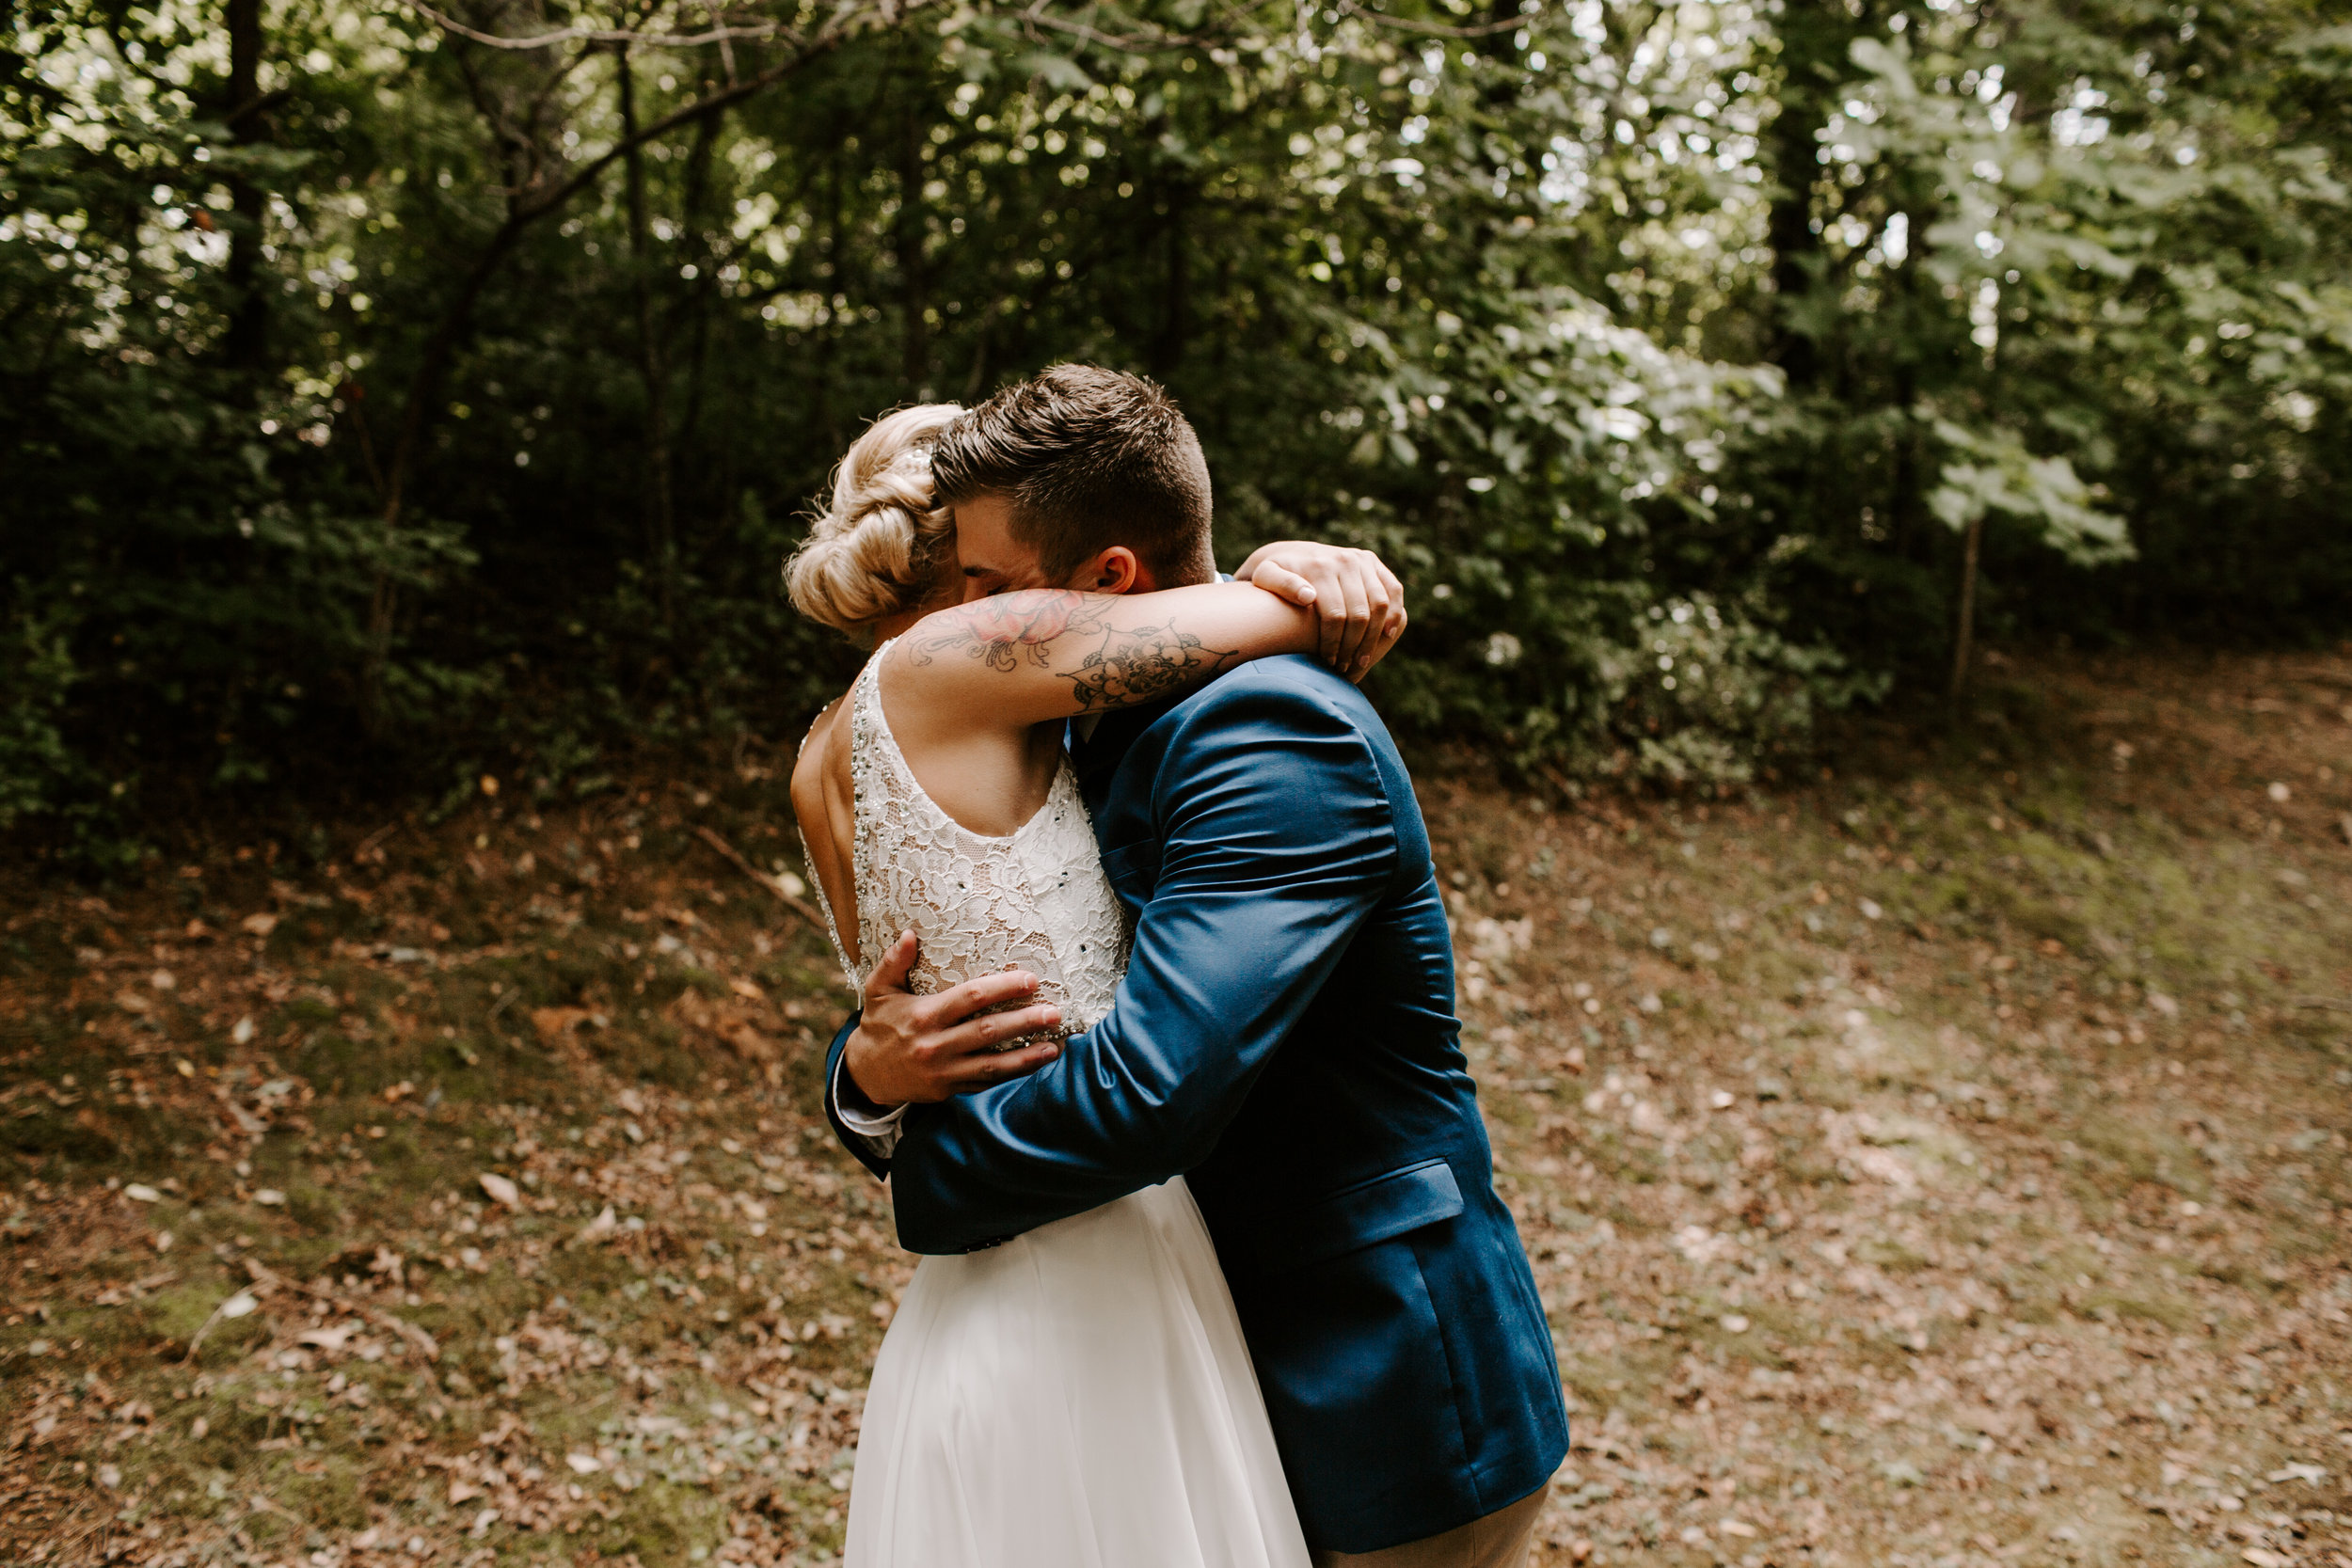 Miranda&braedon_ashevilleelopement (68 of 101).jpg